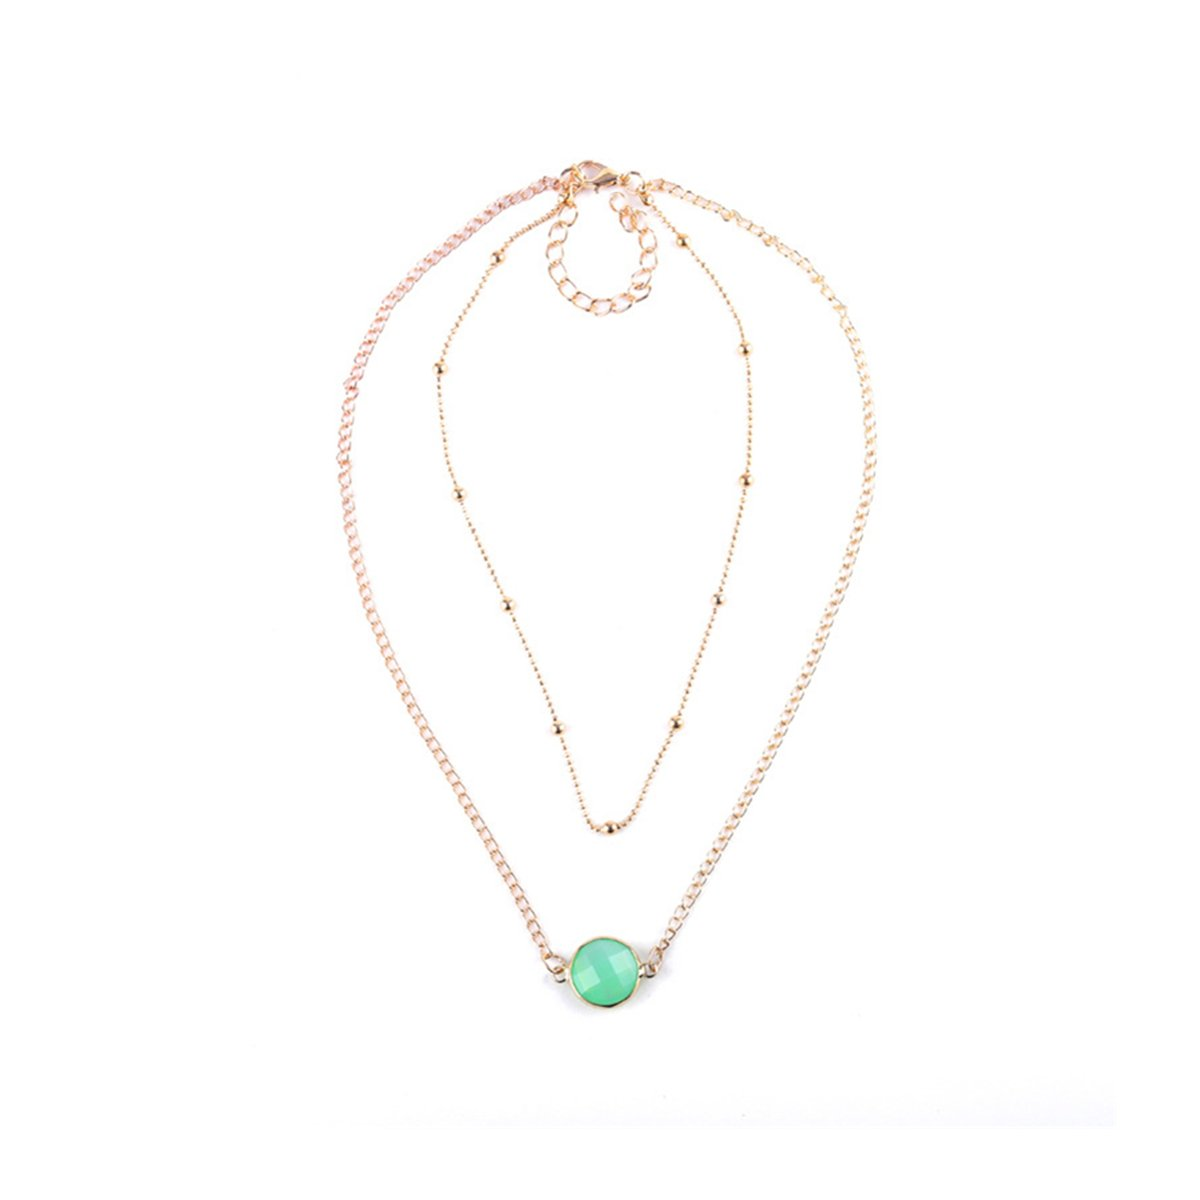 Anqifull Dainty Layered Gold Chocker Handmade Beads Fill Heart White Opal Necklace for Women Girls AQ GOLD AGATE001